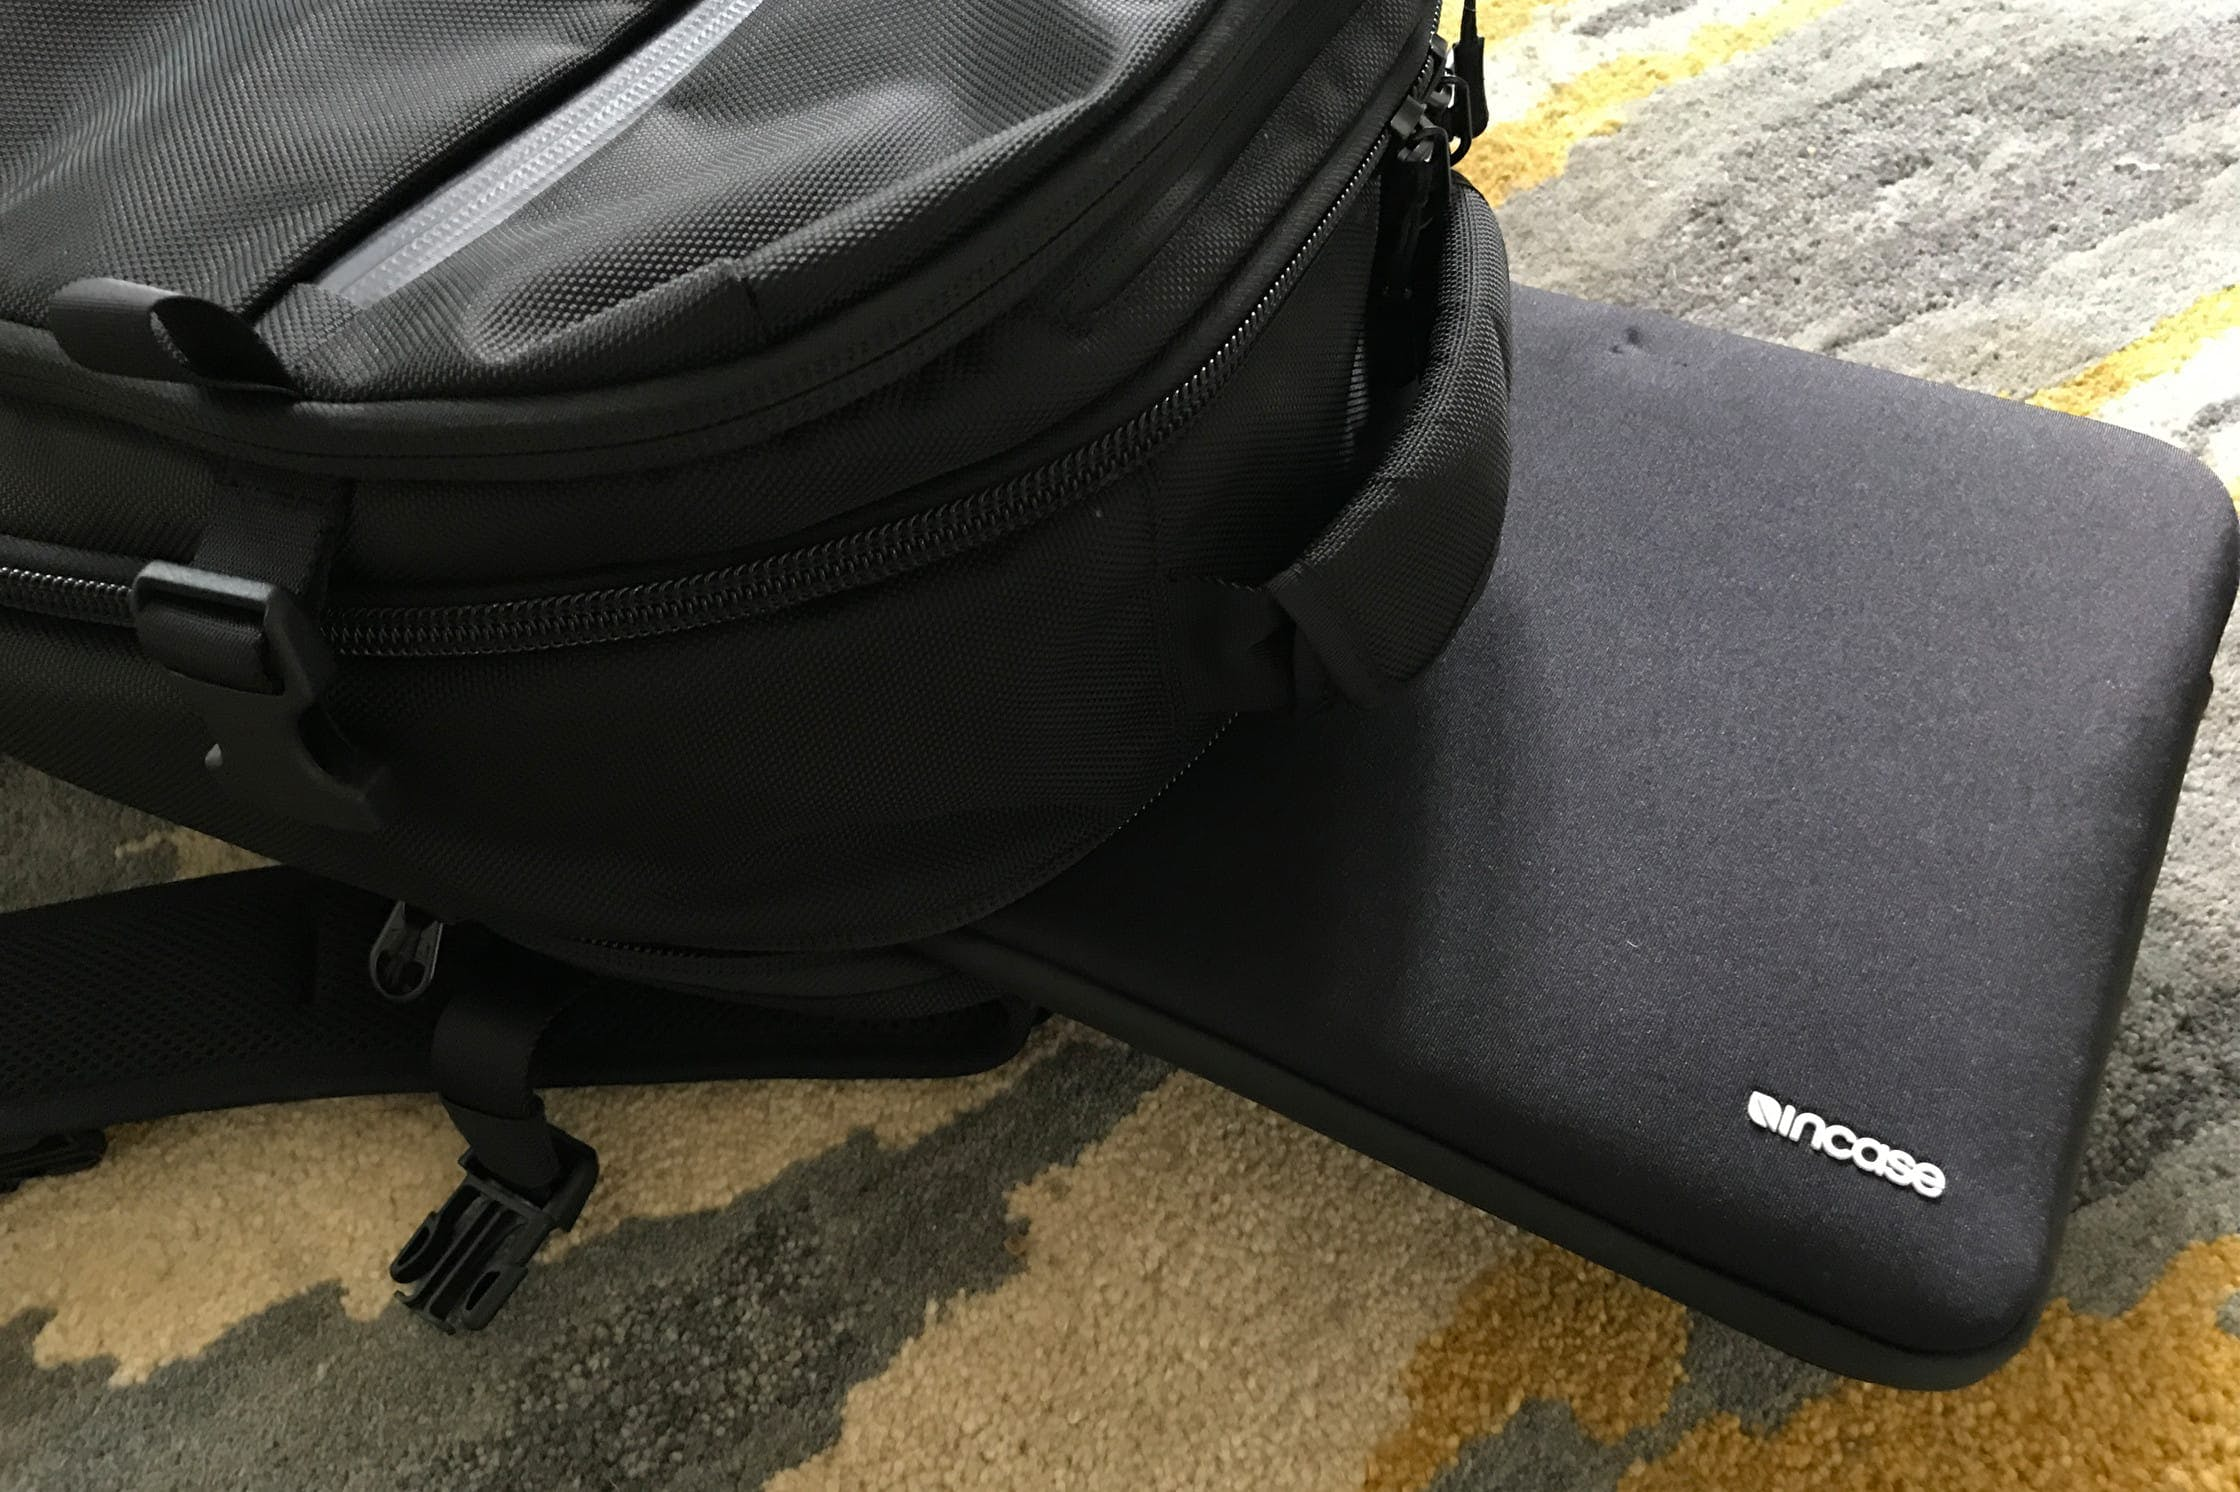 Aer Travel Pack Laptop Compartment